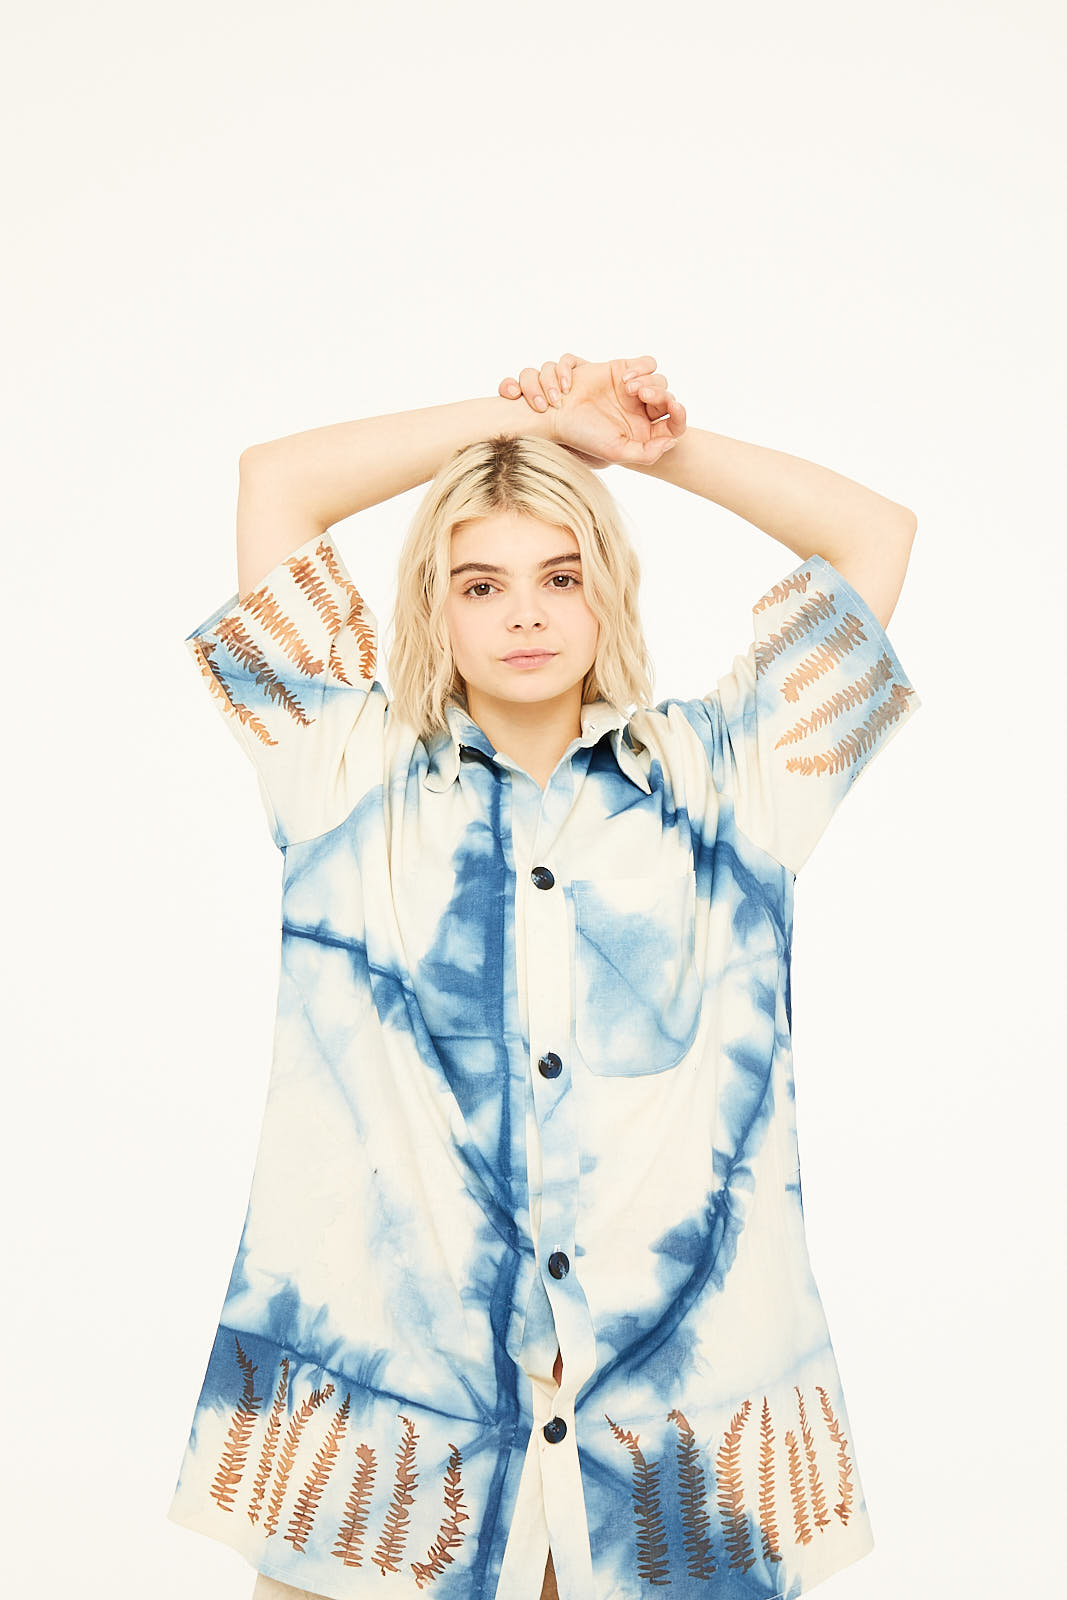 Unisex Naturally dyed Indigo & Madder Root and Seaweed Screen Print Shirt